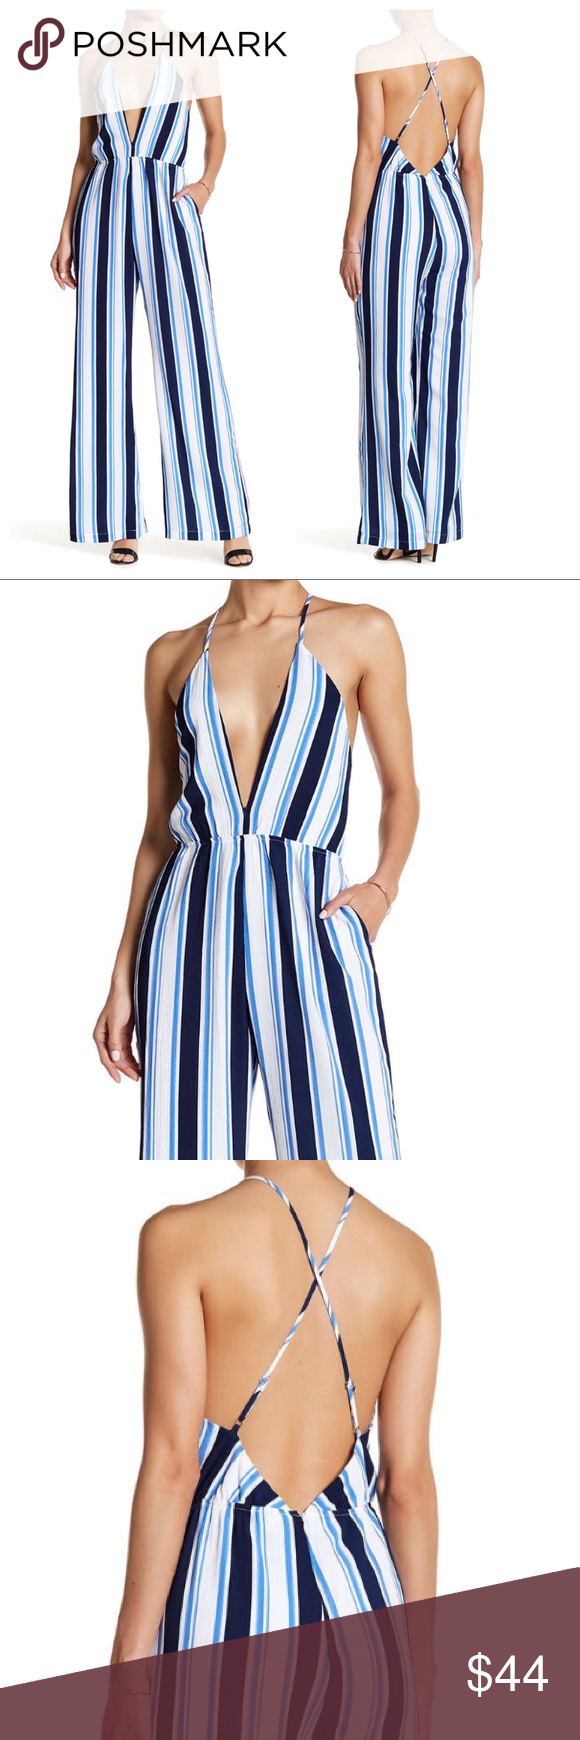 b2db7c0ca17 Lucca Couture Strappy Low Back Jumpsuit Striped Jumpsuit with plunging  v-neck